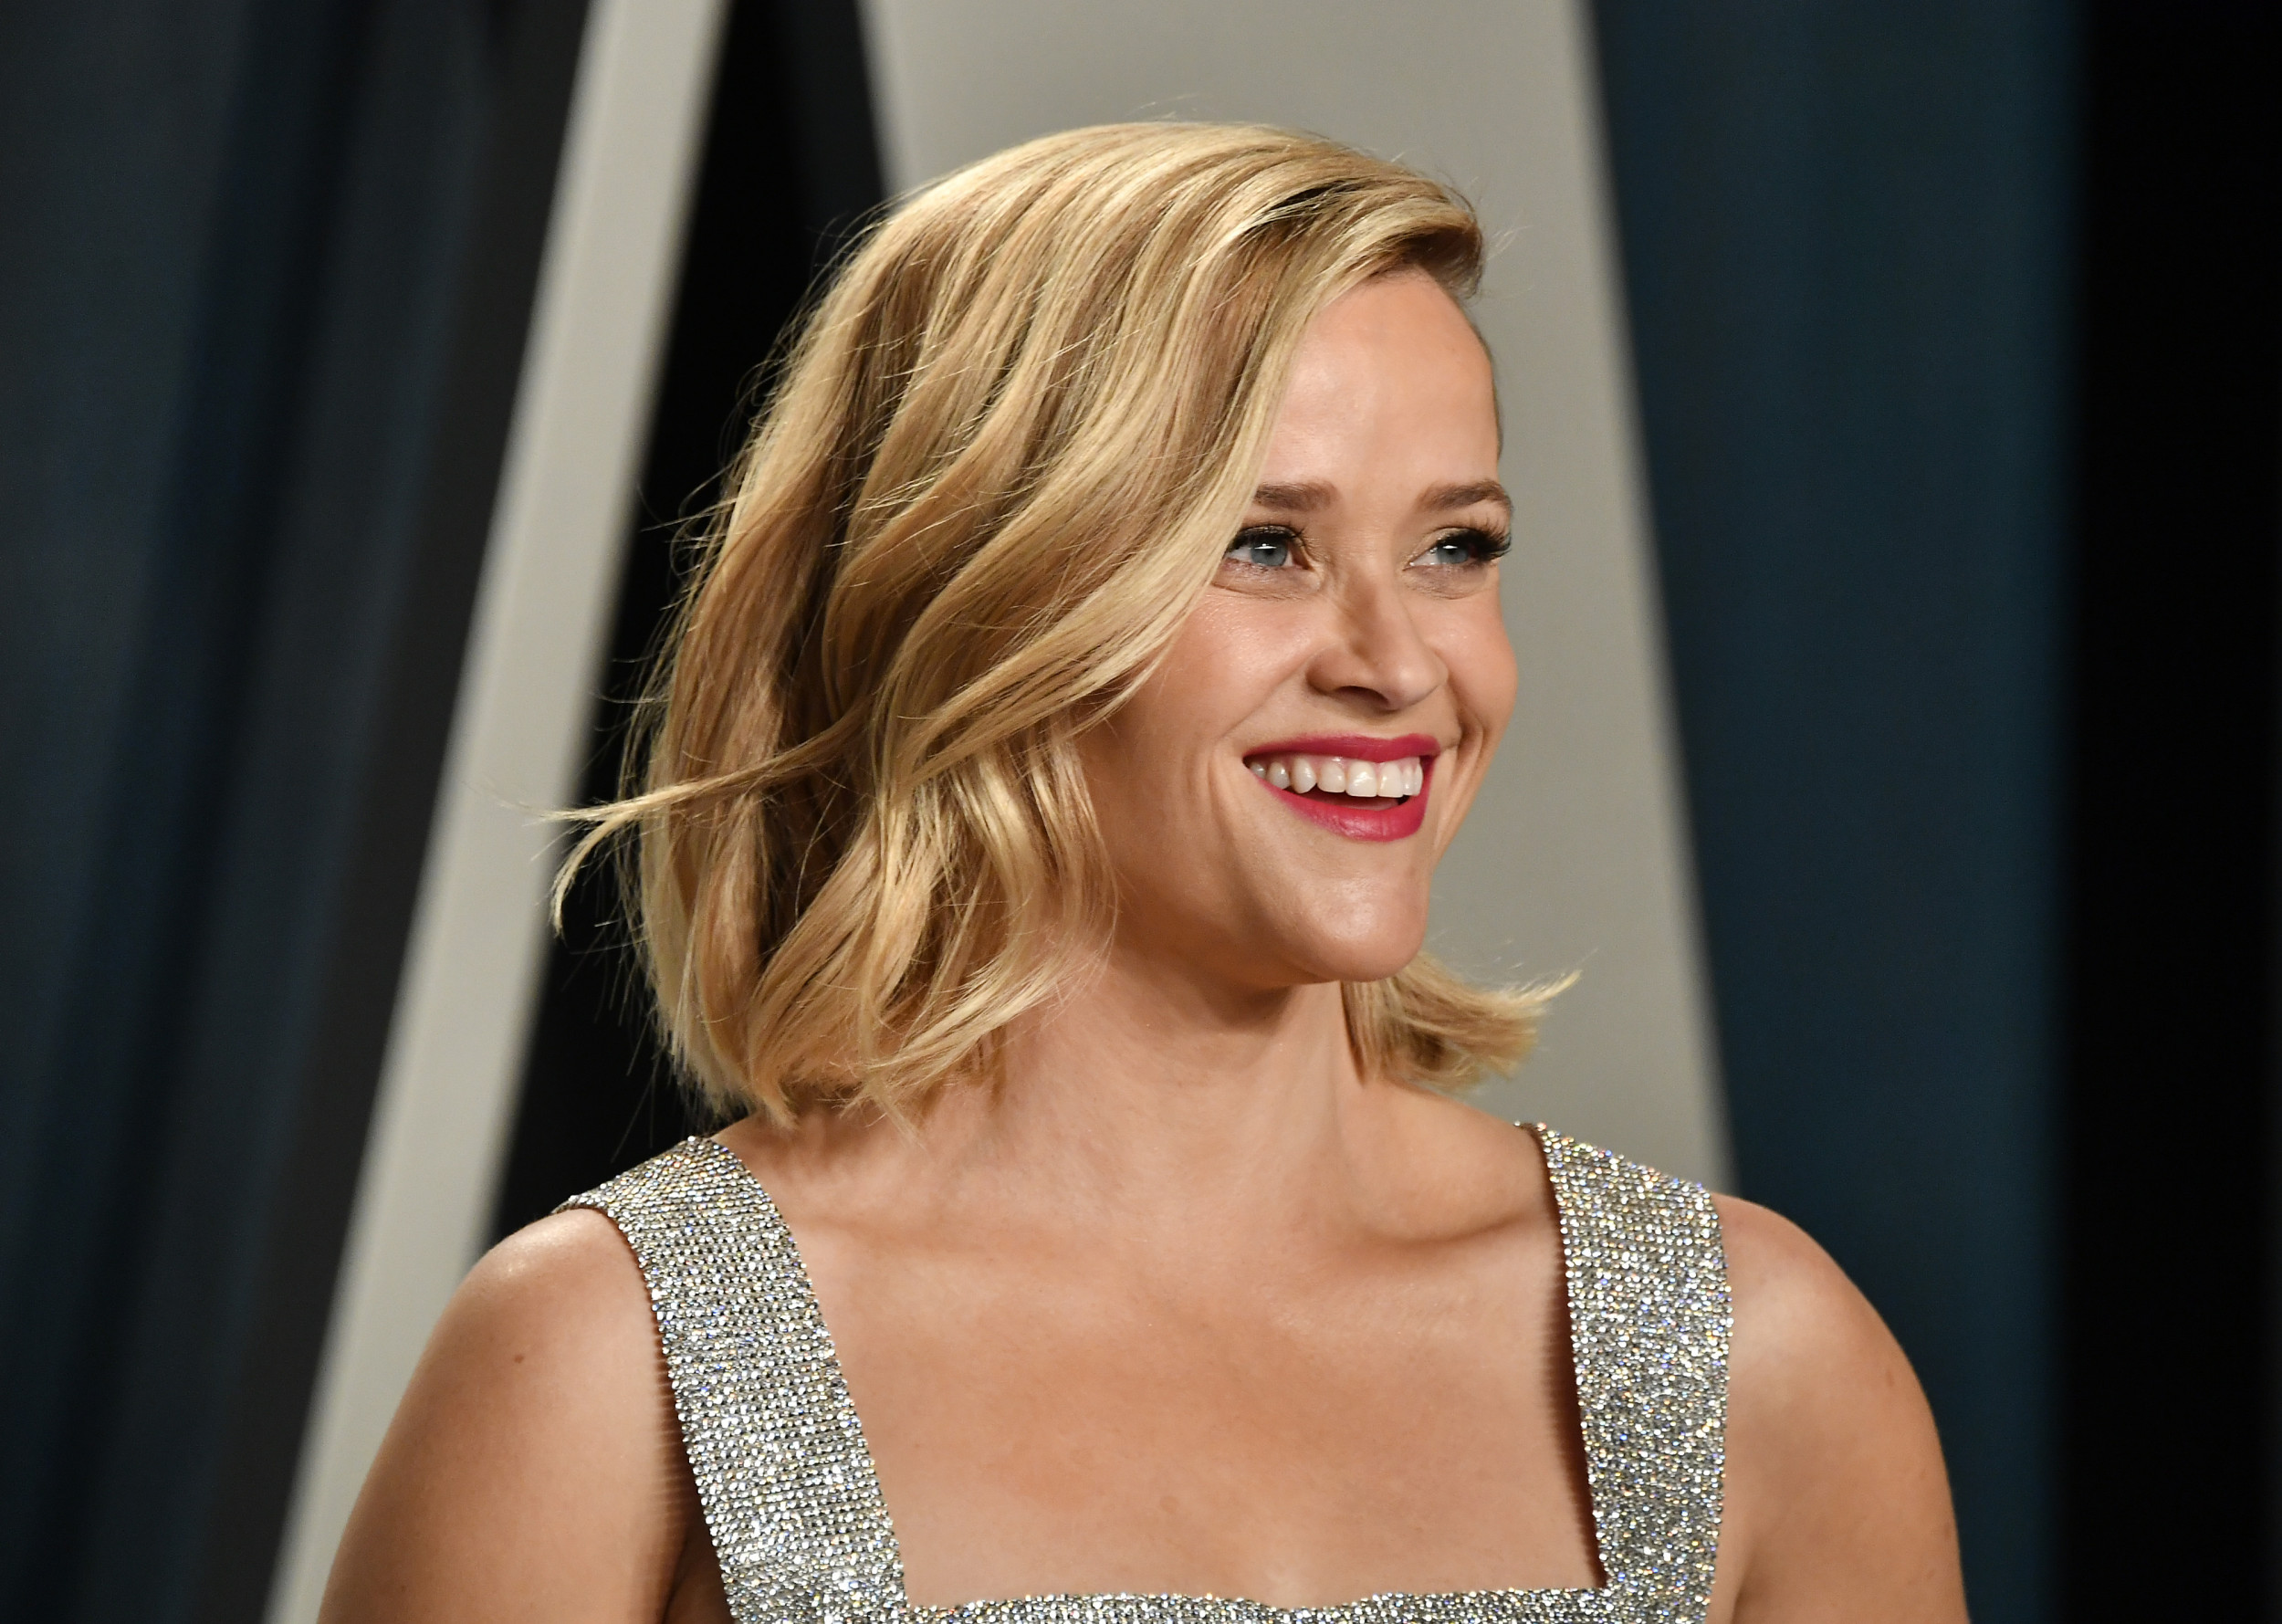 What is the 2020 Challenge? Reese Witherspoon sparks Instagram trend